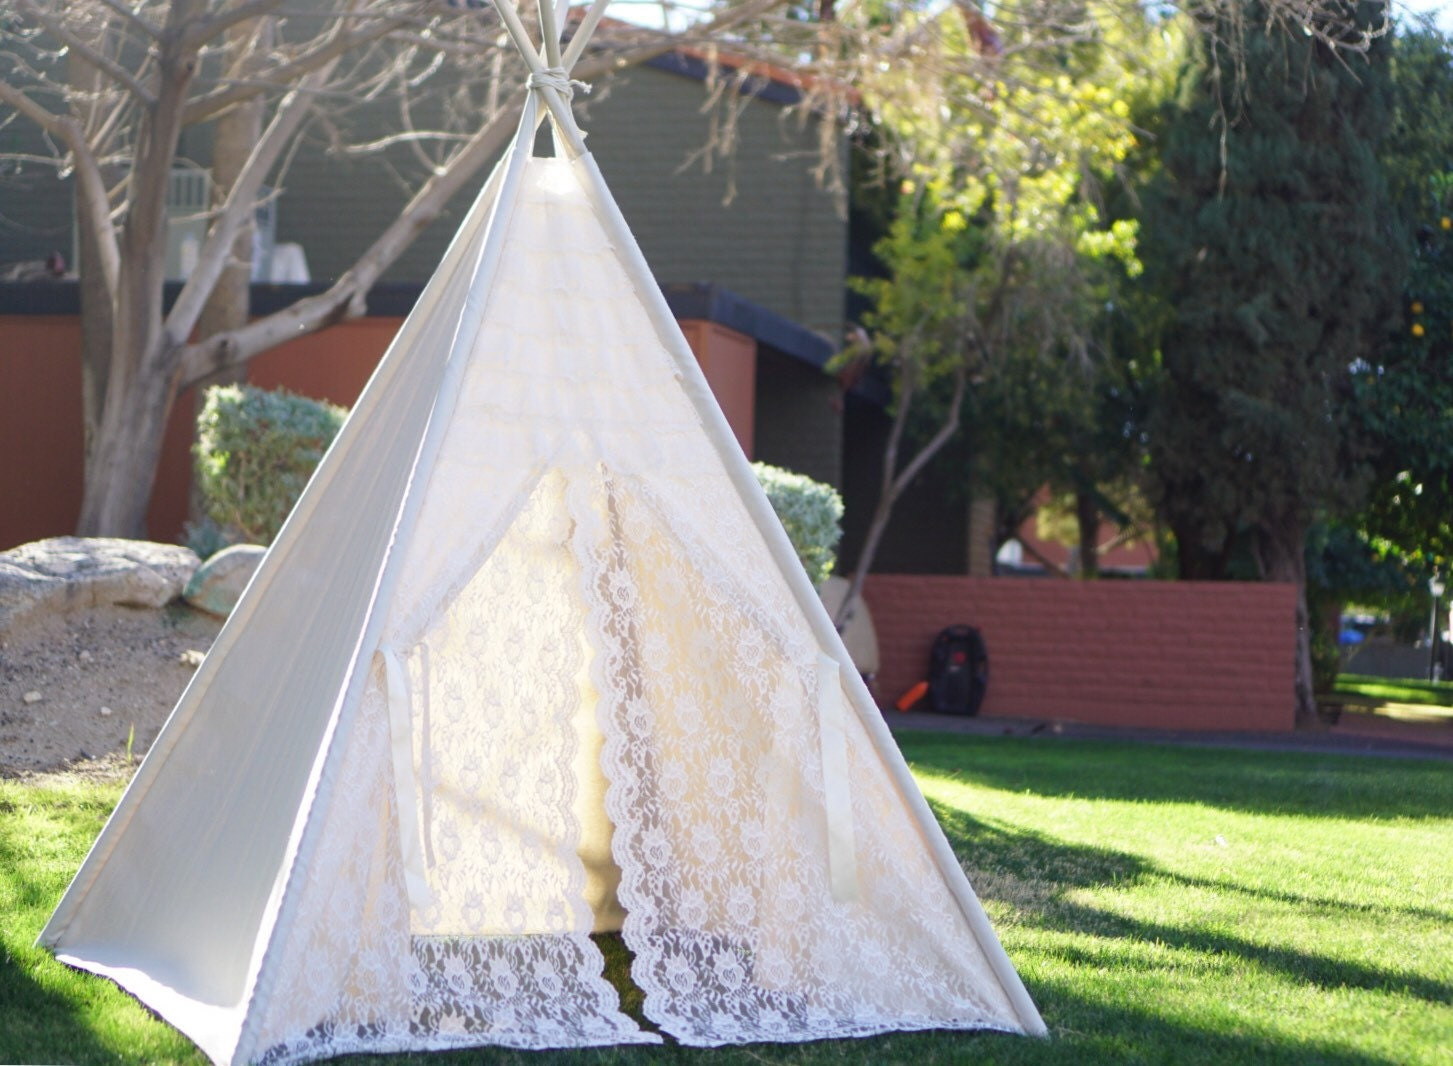 Glamour Lace teepee tent/kids teepee Play tent/ girls lace Tipi Wigwam or Playhouse ruffle photo prop tent & Glamour Lace teepee tent/kids teepee Play tent/ girls lace Tipi ...